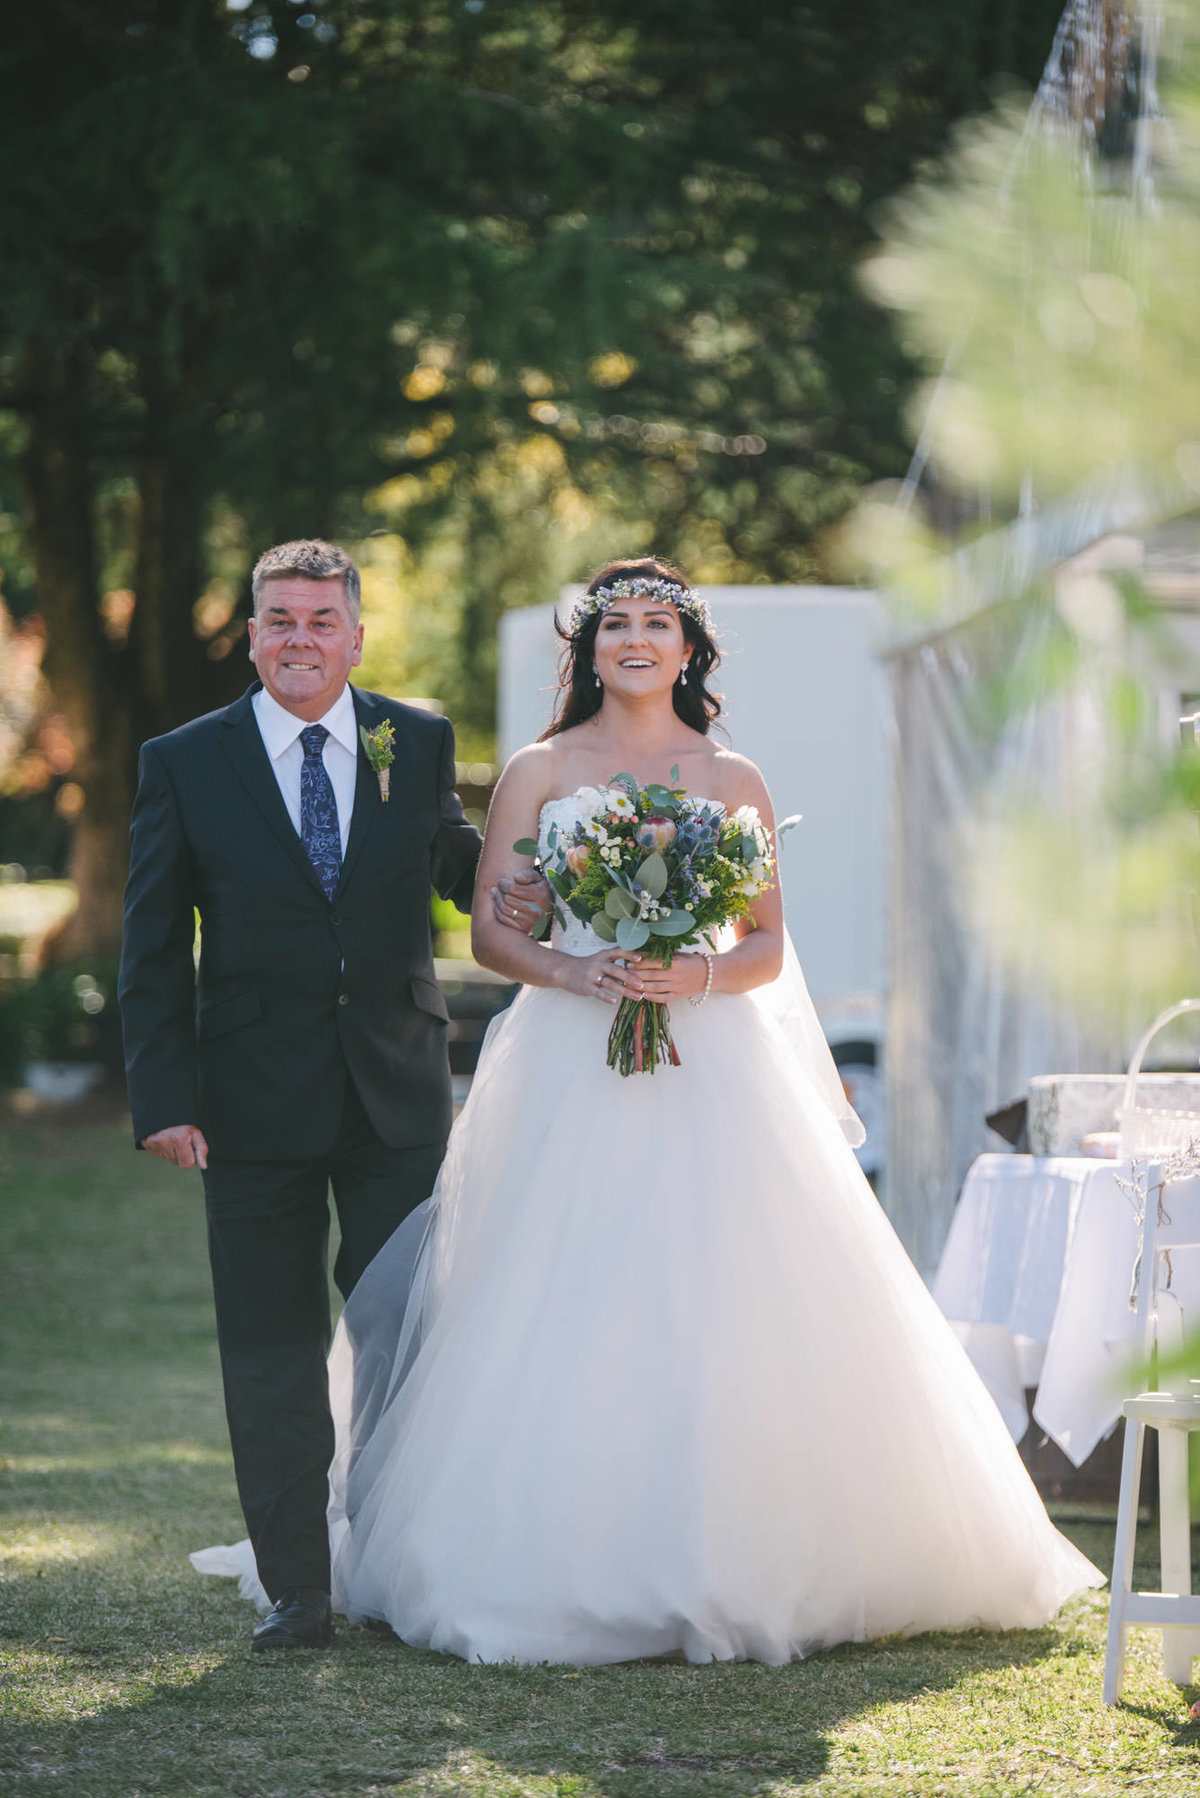 Rachael-andrew-allview-escape-blackheath-wedding-35